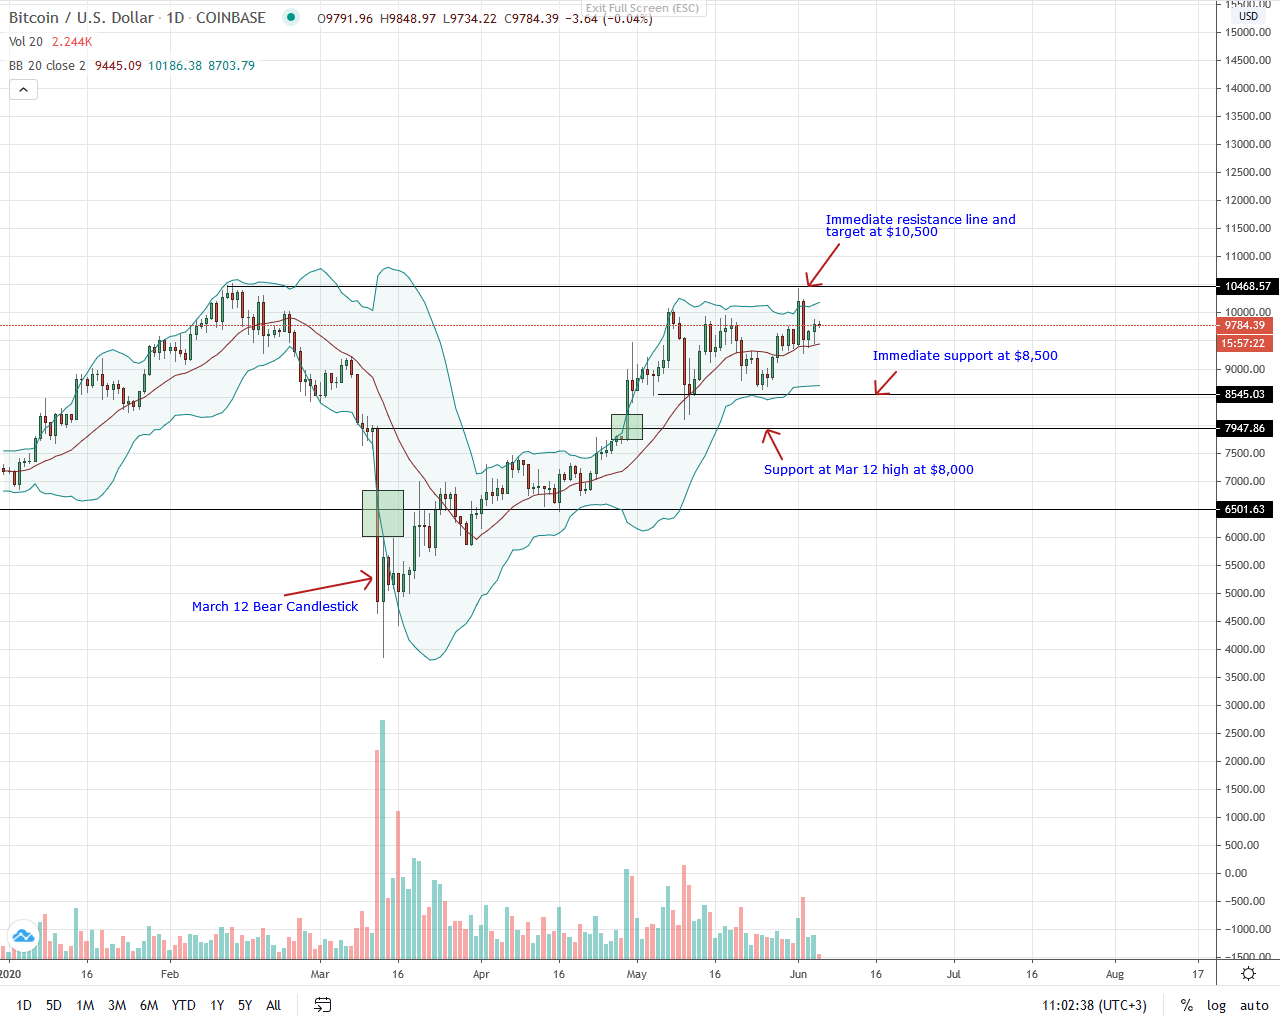 Bitcoin Daily Chart for June 5, 2020